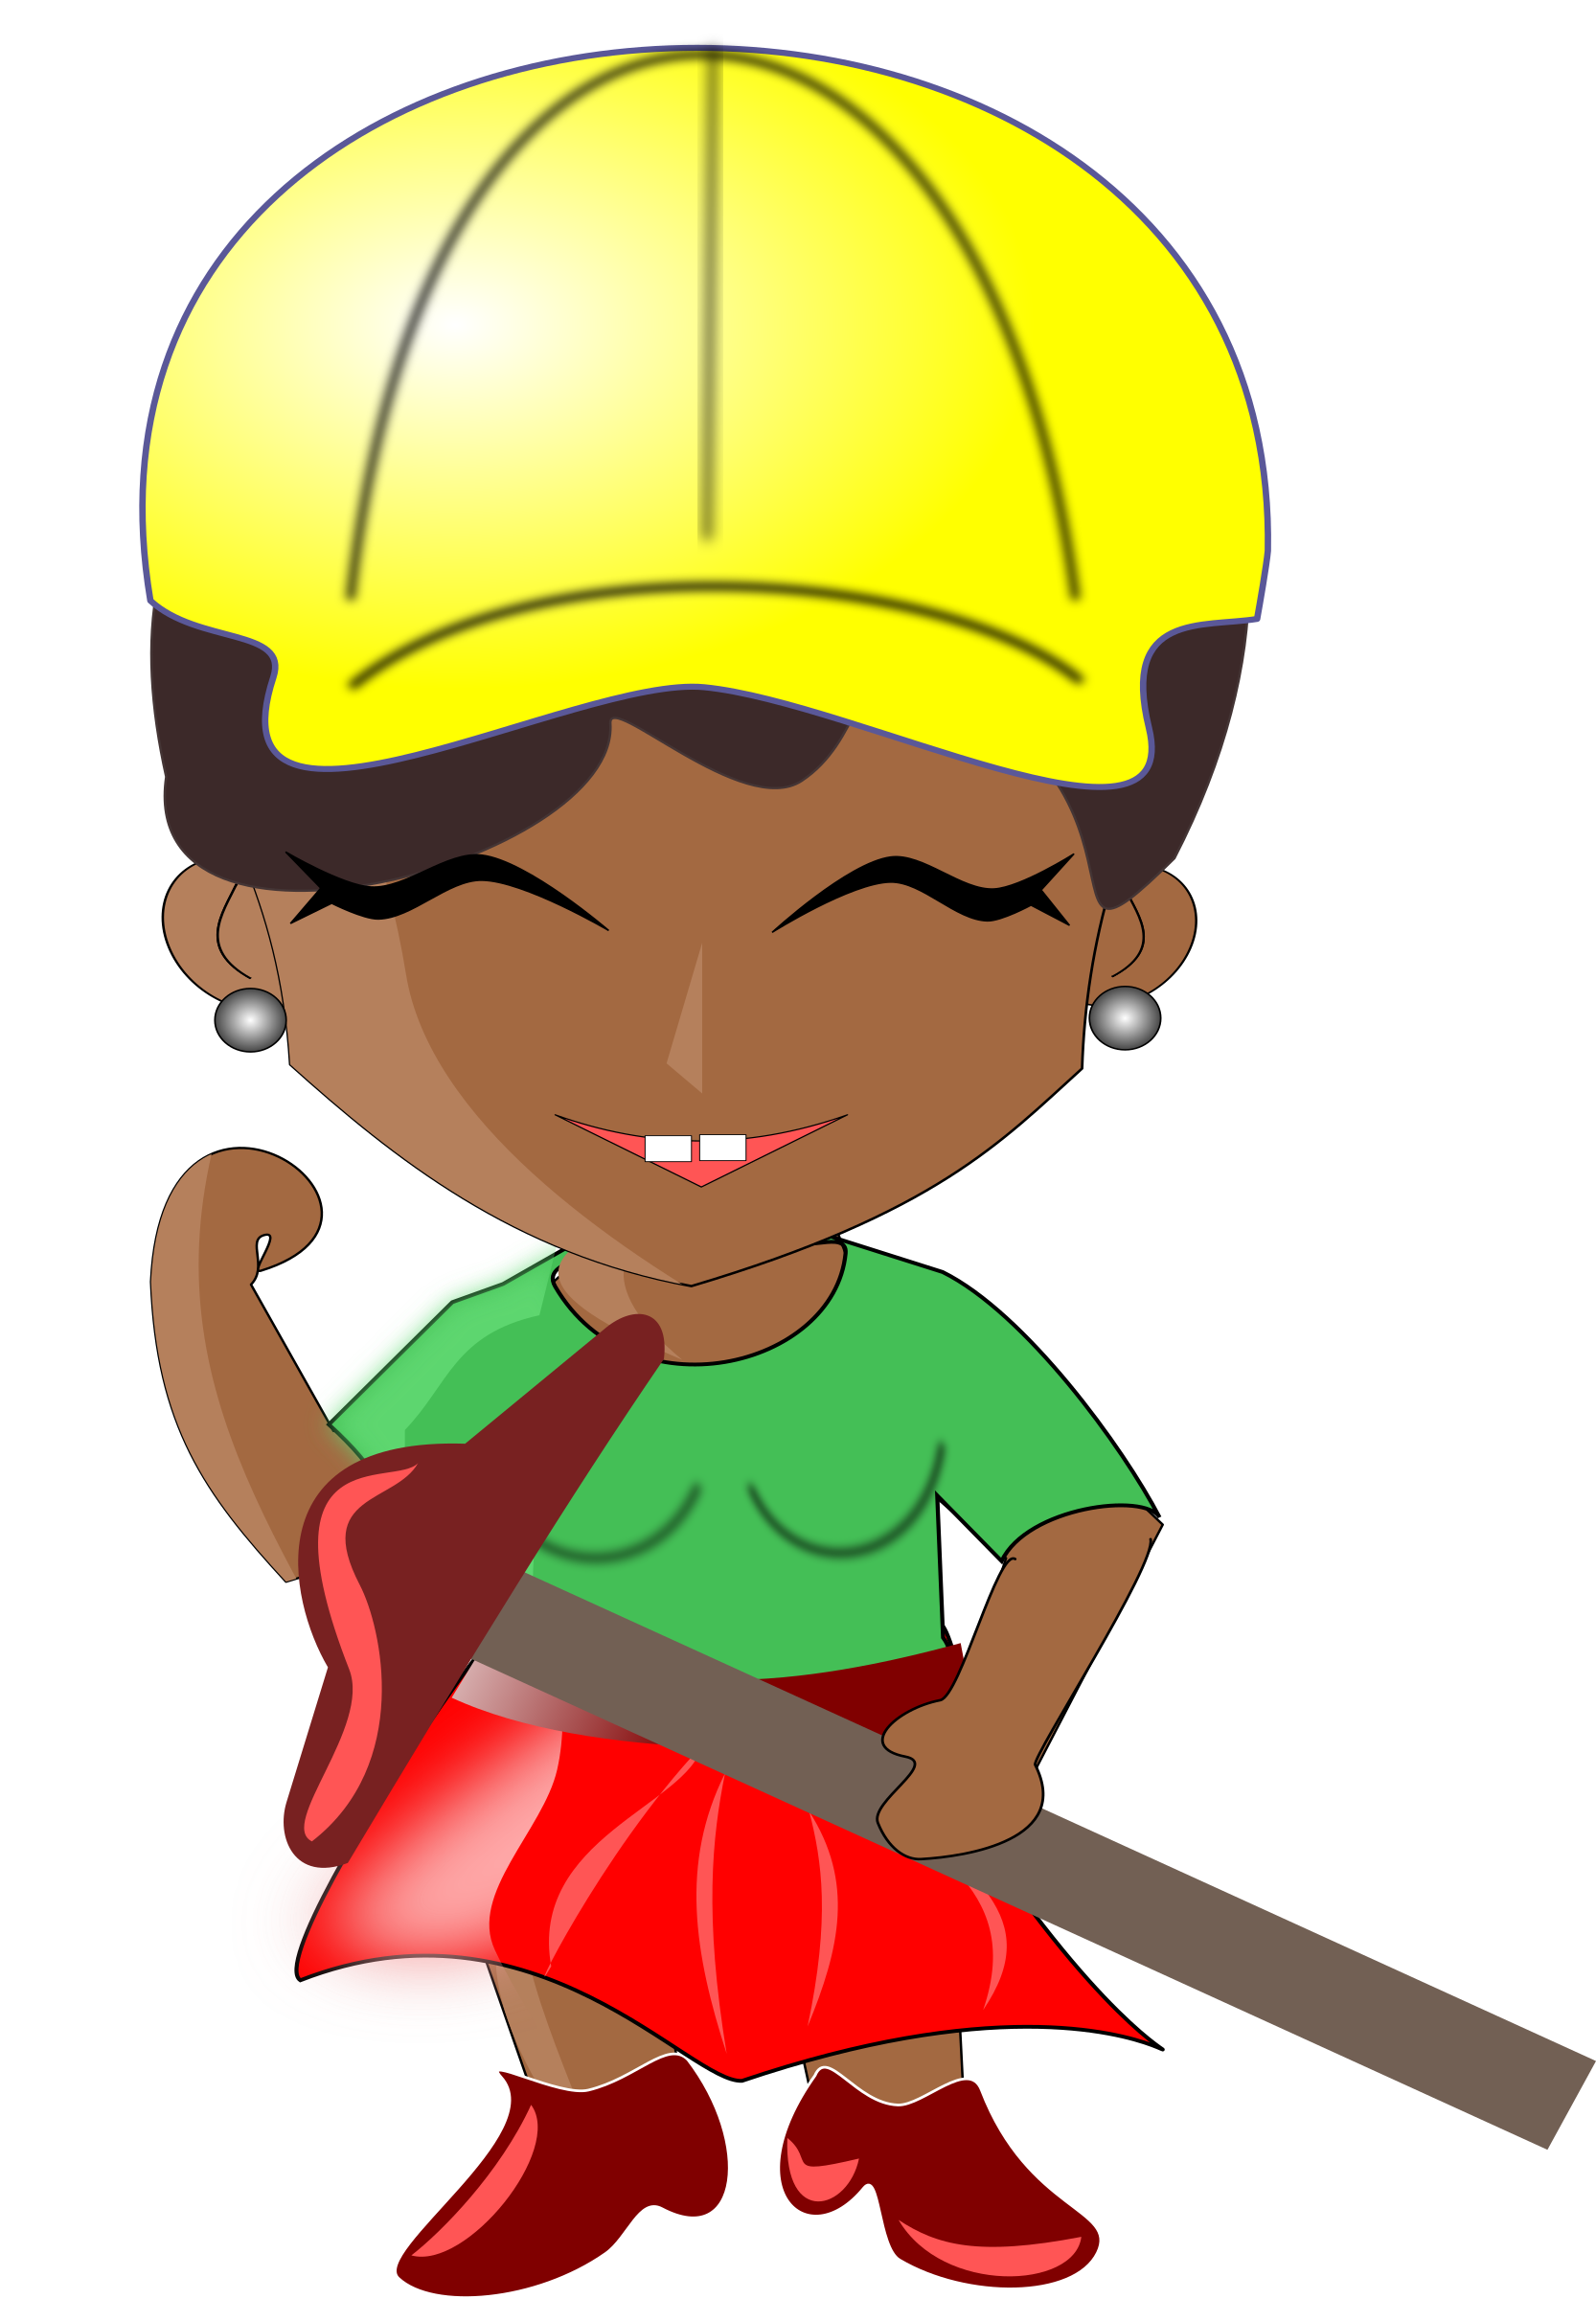 African lady big image. Architect clipart transparent